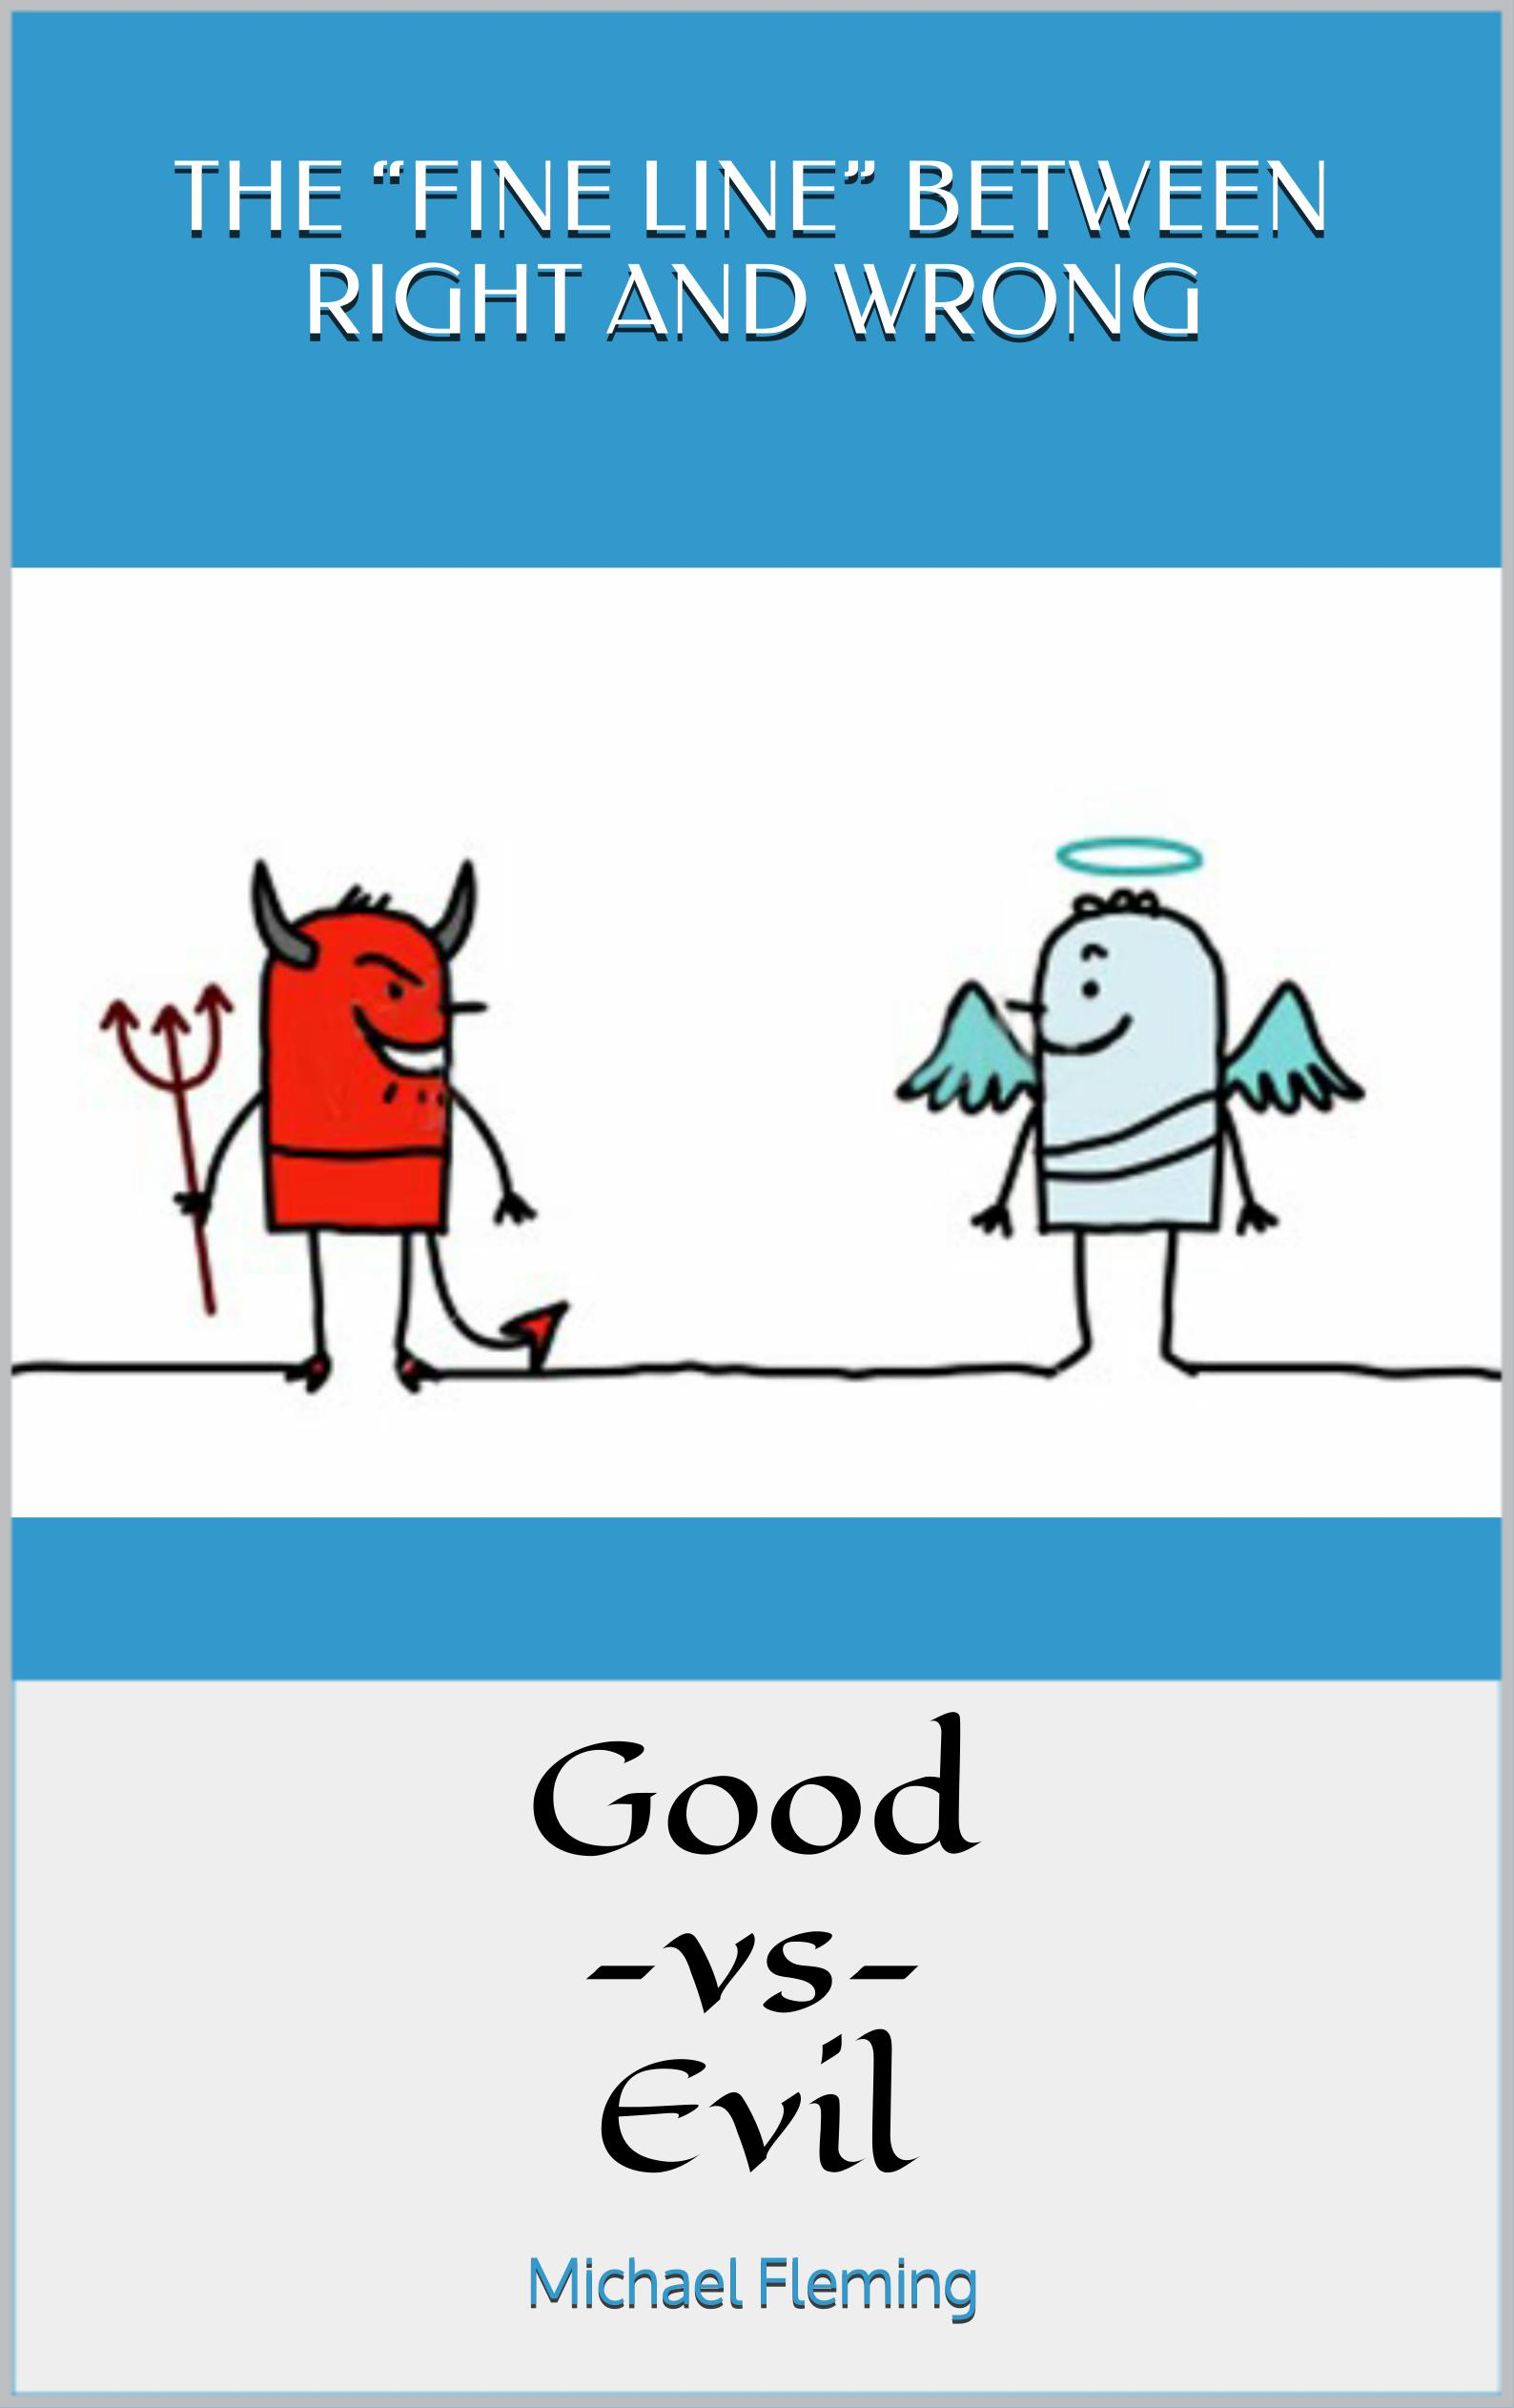 good vs evil wrong vs right What is right vs wrong what is good vs evil what is truth vs falsehood what are moral dilemmas the tough decisions we have to use ethics for.